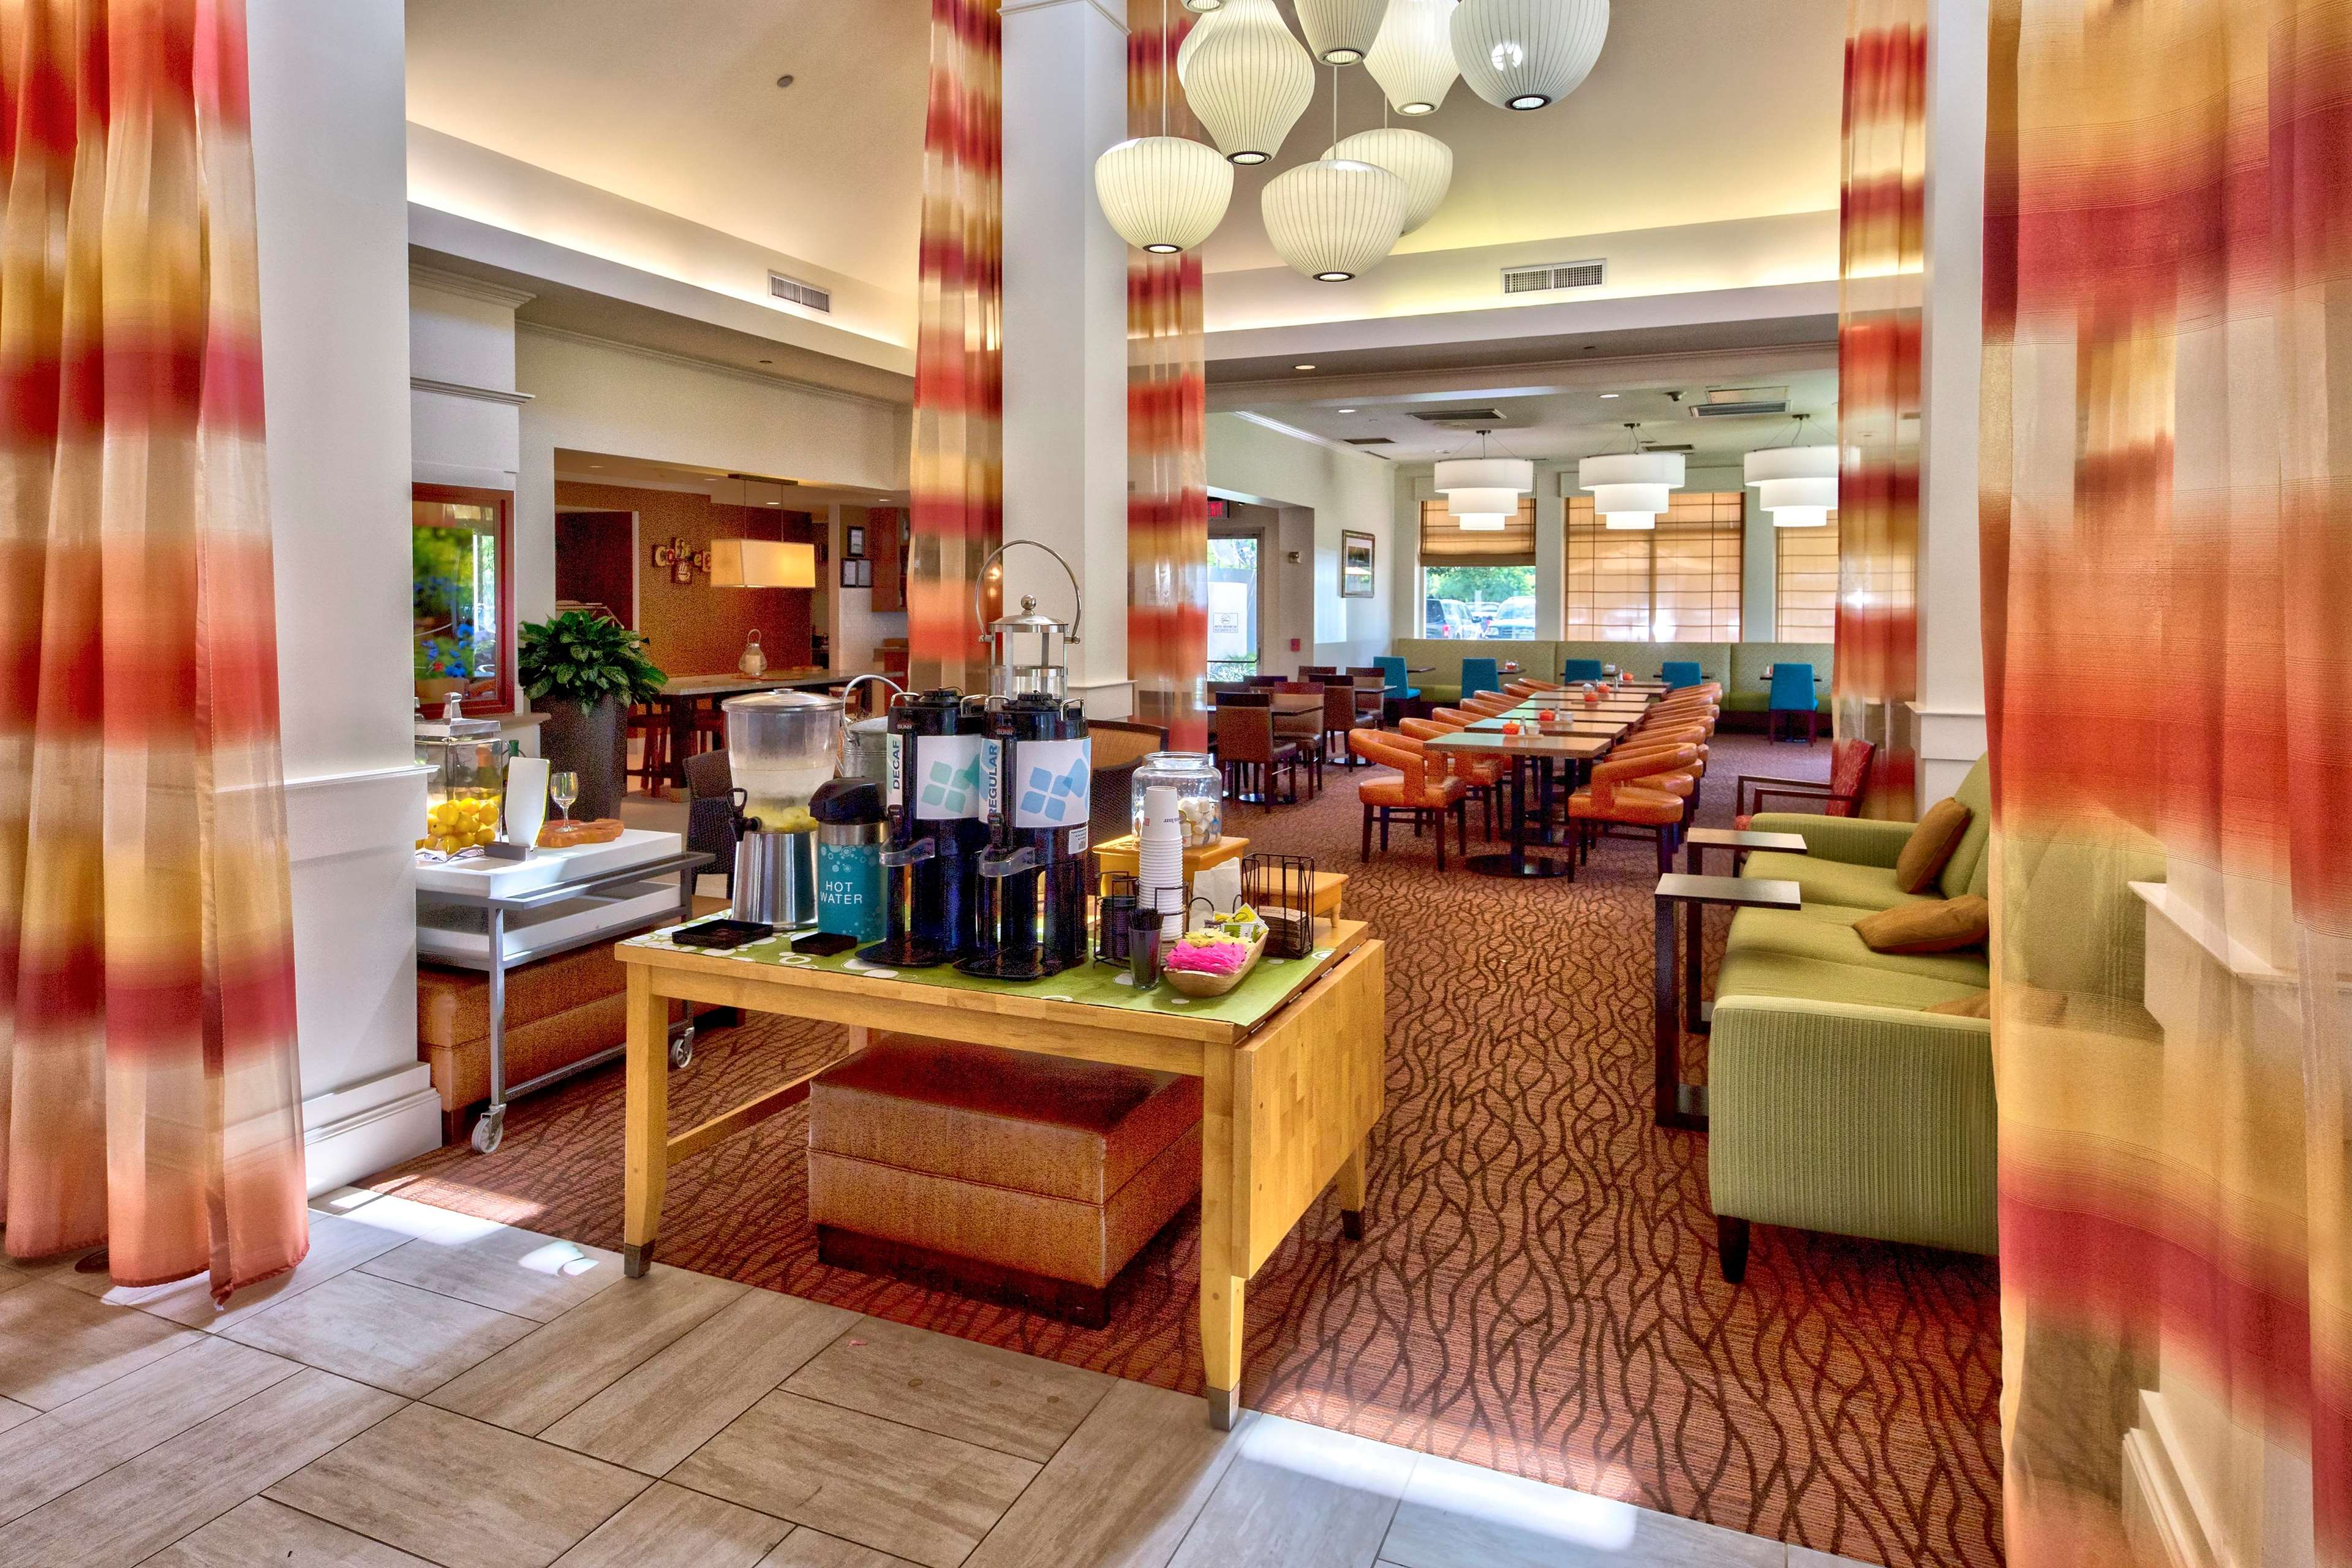 Hilton Garden Inn Houston/Bush Intercontinental Airport image 11